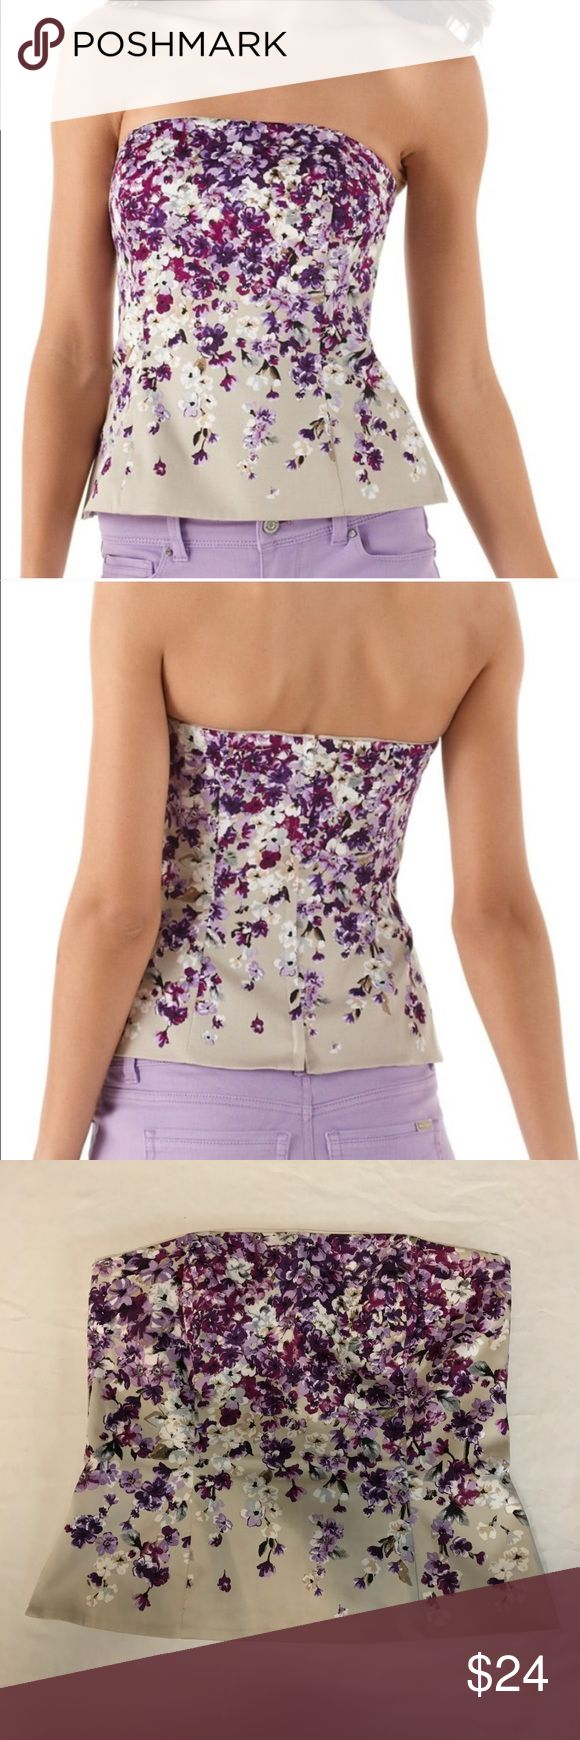 WHBM Cream and Floral Print Strapless Bustier Top White House Black Market. Size 8. Cream bustier top with purple floral print. Strapless. Slight Peplum flare out. Fully lined. Zipper down the back. Excellent used condition. Bust: 16.5 inches. Length: 15.5 inches. Waist: 15.5 inches. ALL MEASUREMENTS ARE TAKEN WITH ITEM LAYING FLAT. Shell: 98% cotton, 2% spandex. Lining: 95% polyester, 5% spandex. ||520|| White House Black Market Tops